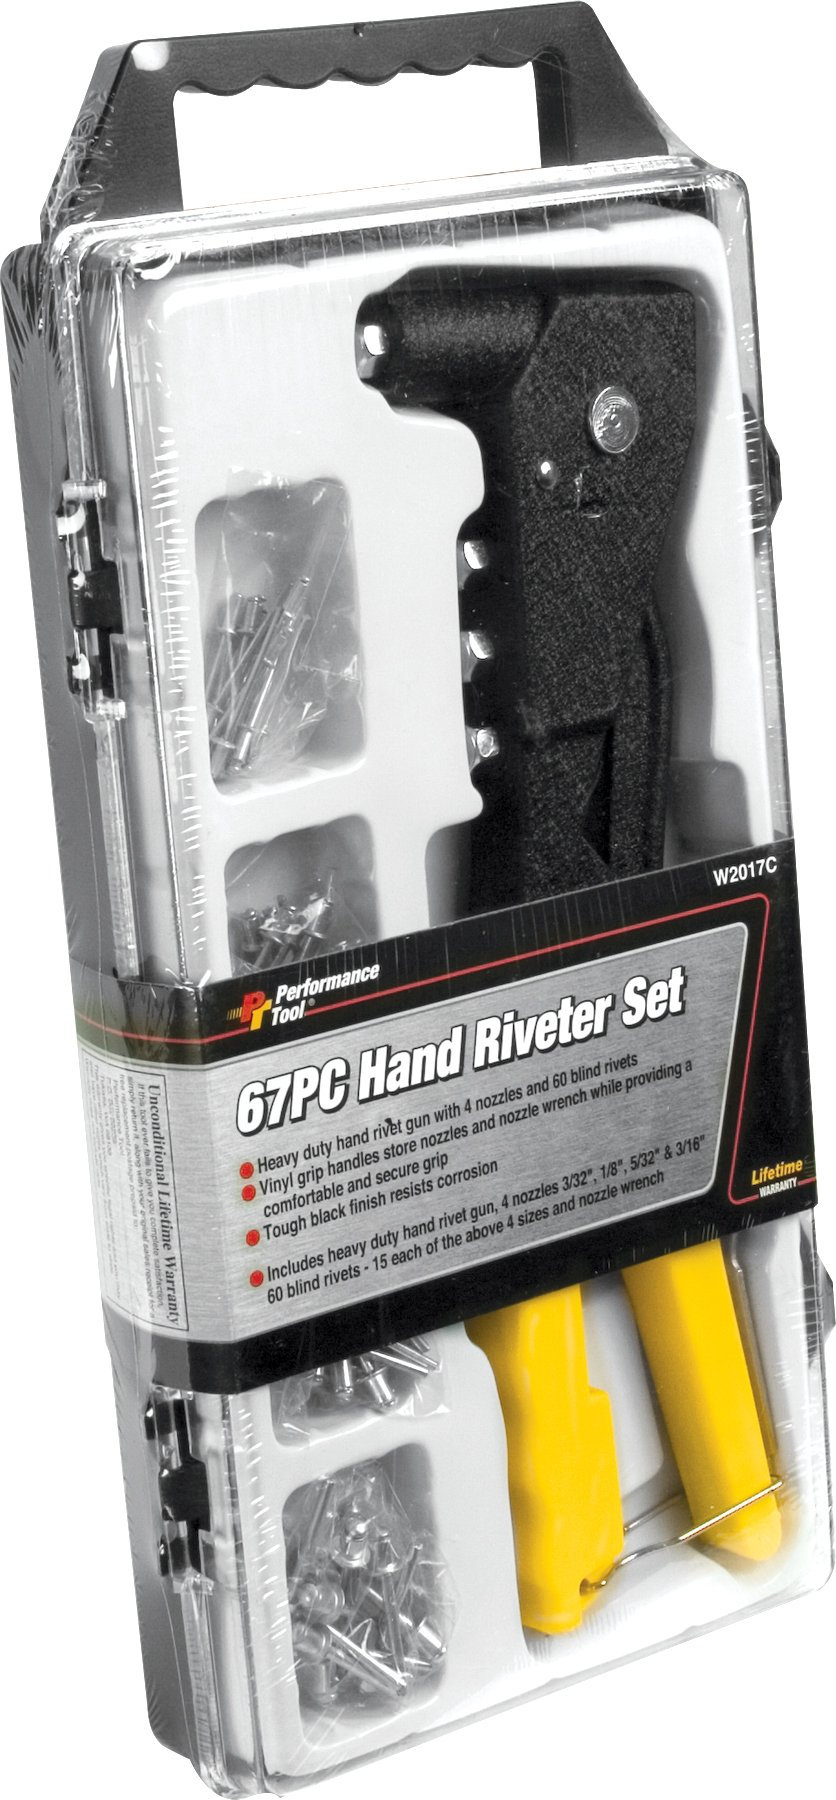 Performance Tool W2017C Hand Riveter Set, 67-Piece by Performance Tool (Image #2)